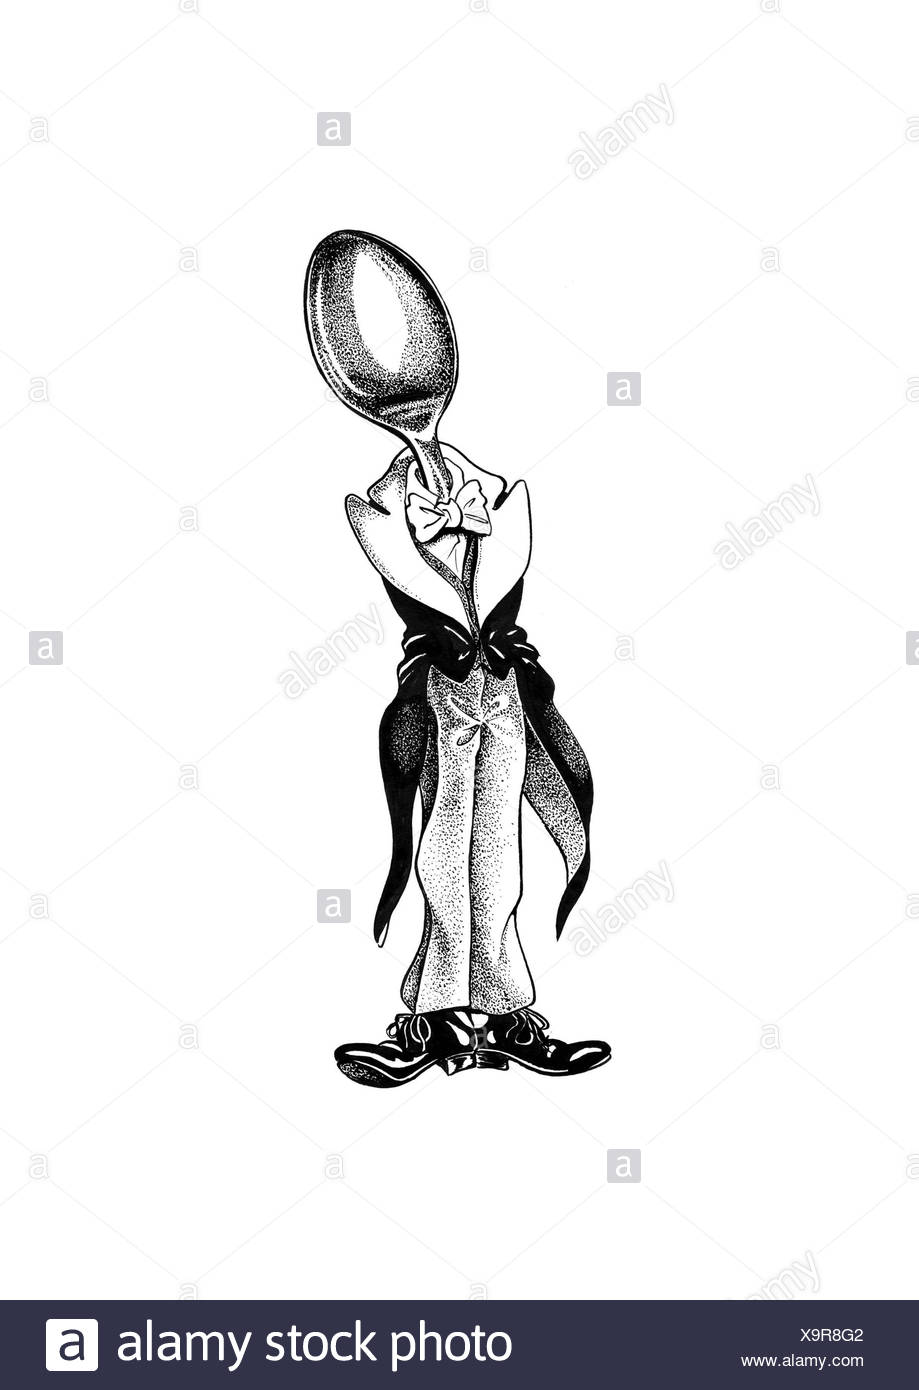 Tablespoon in tailcoat with bowtie - Stock Image